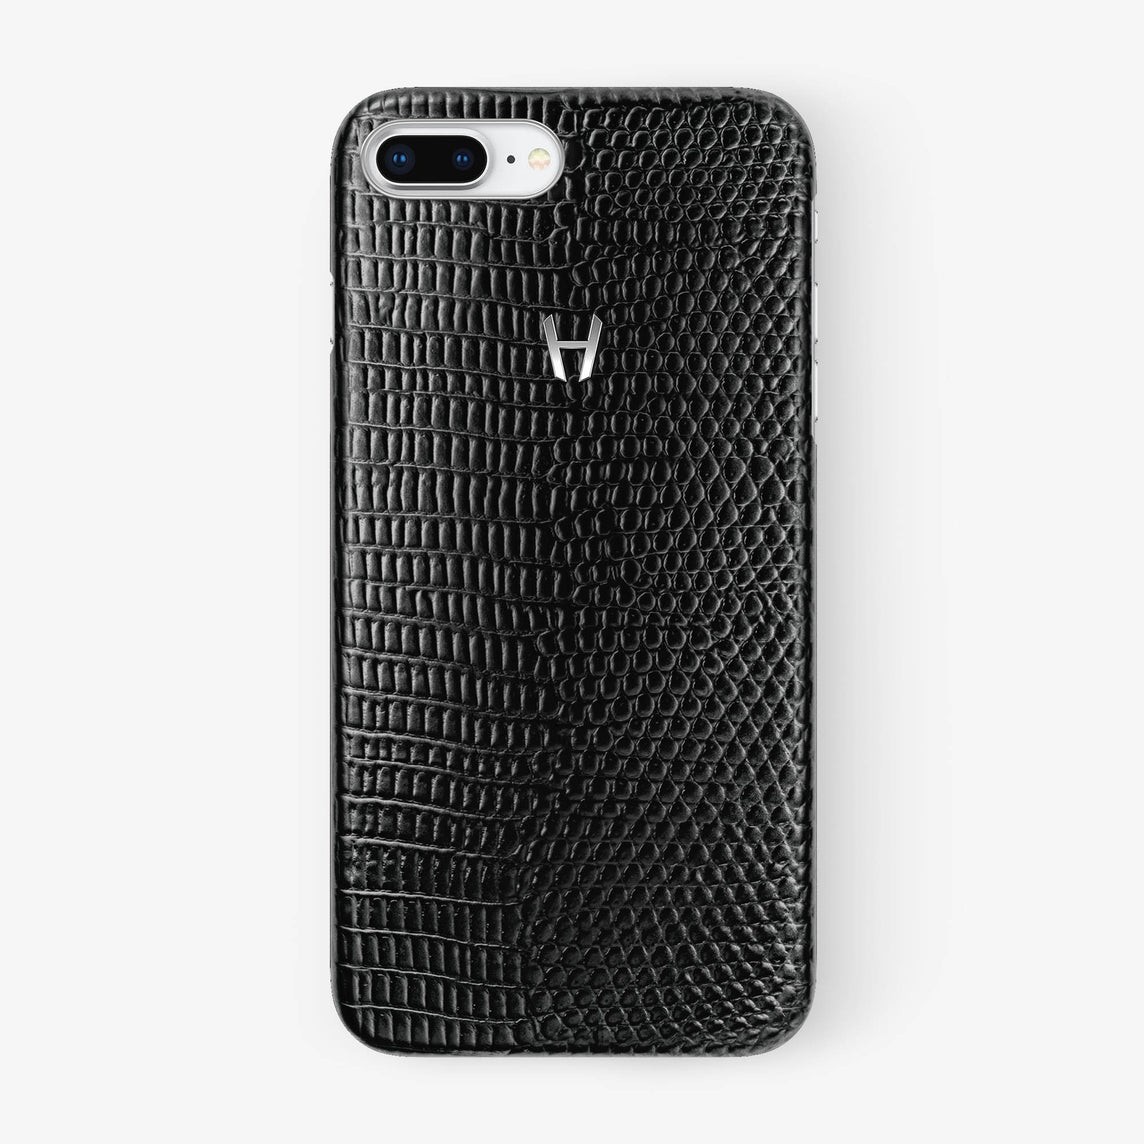 Lizard Case iPhone 7/8 Plus | Black - Stainless Steel without-personalization